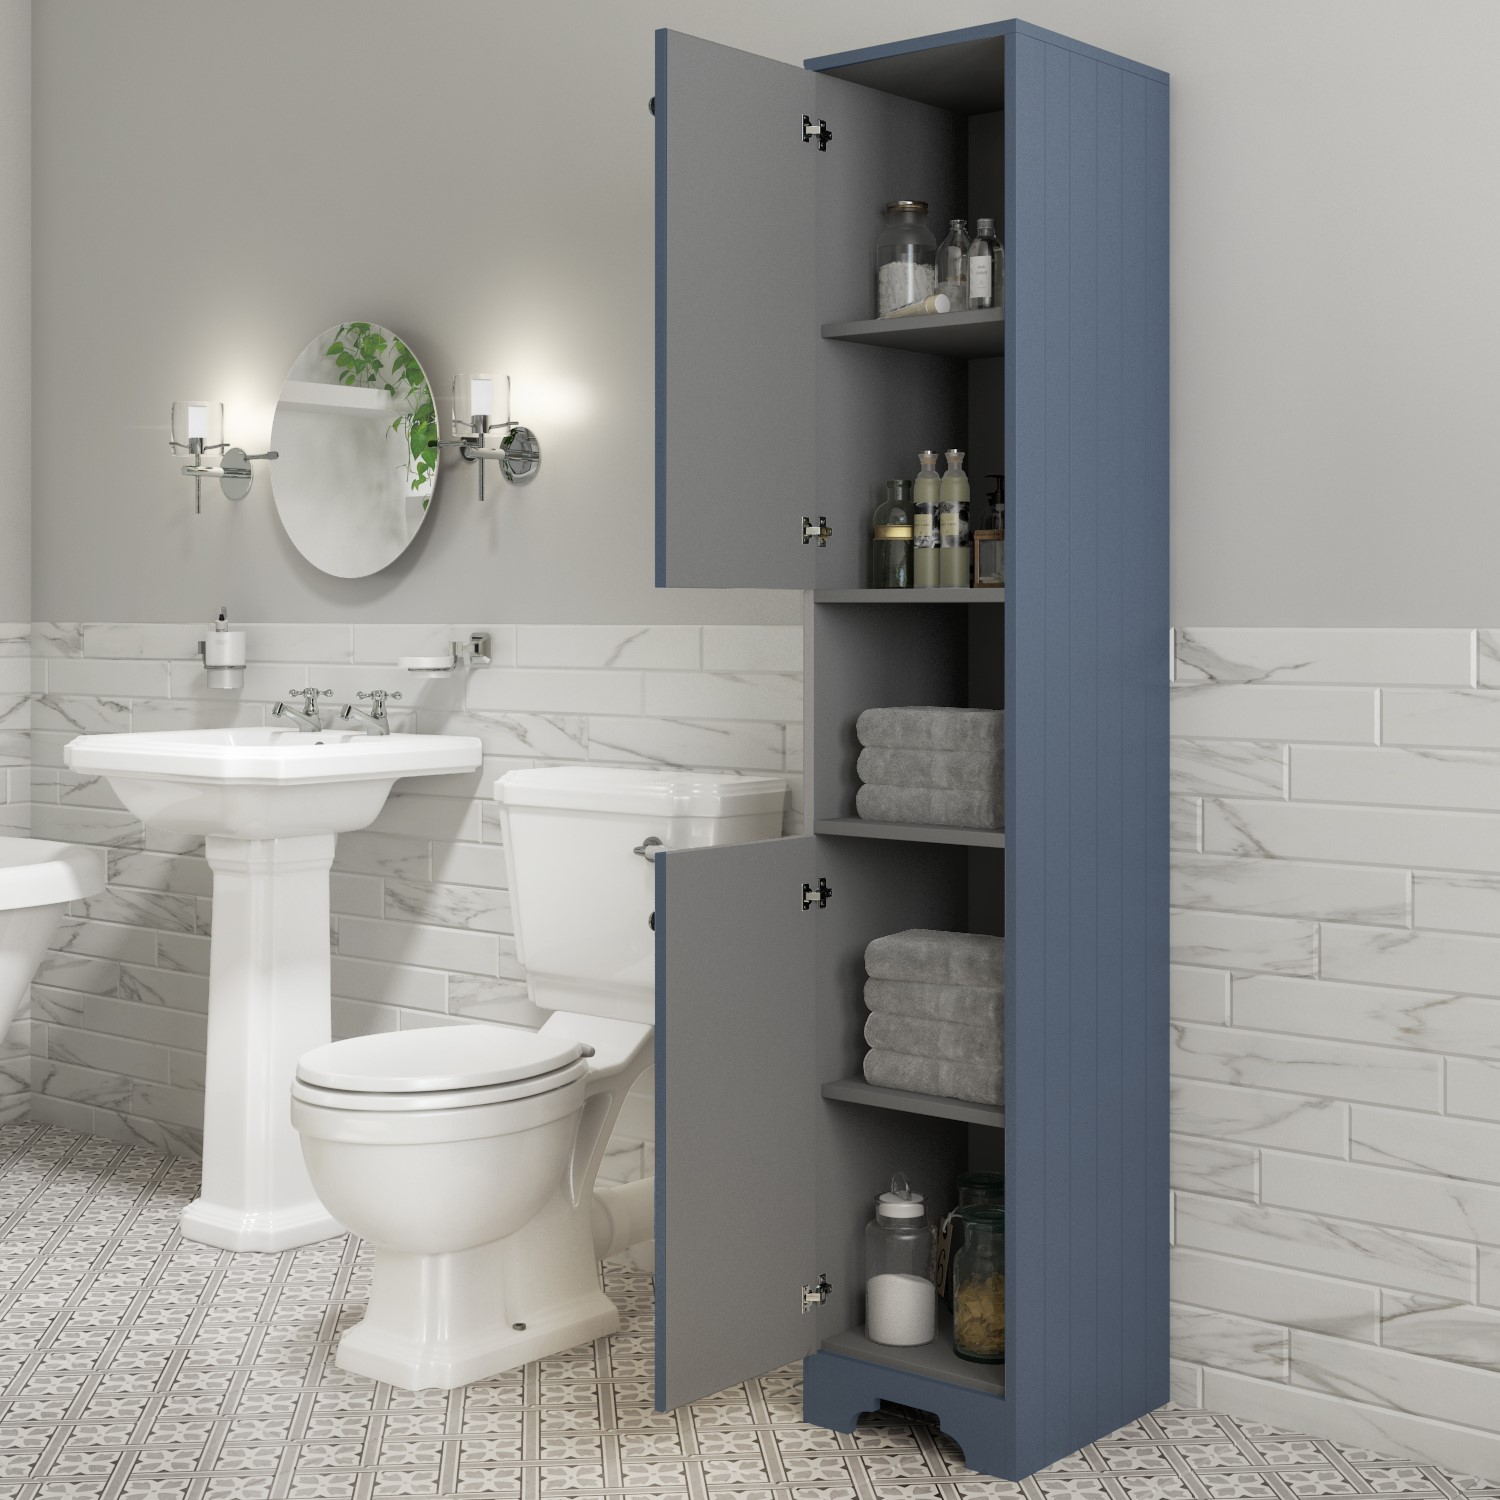 Traditional Tall Boy Bathroom Cabinet Doors Shelves Matt Blue Baxenden Beba 24985 Appliances Direct